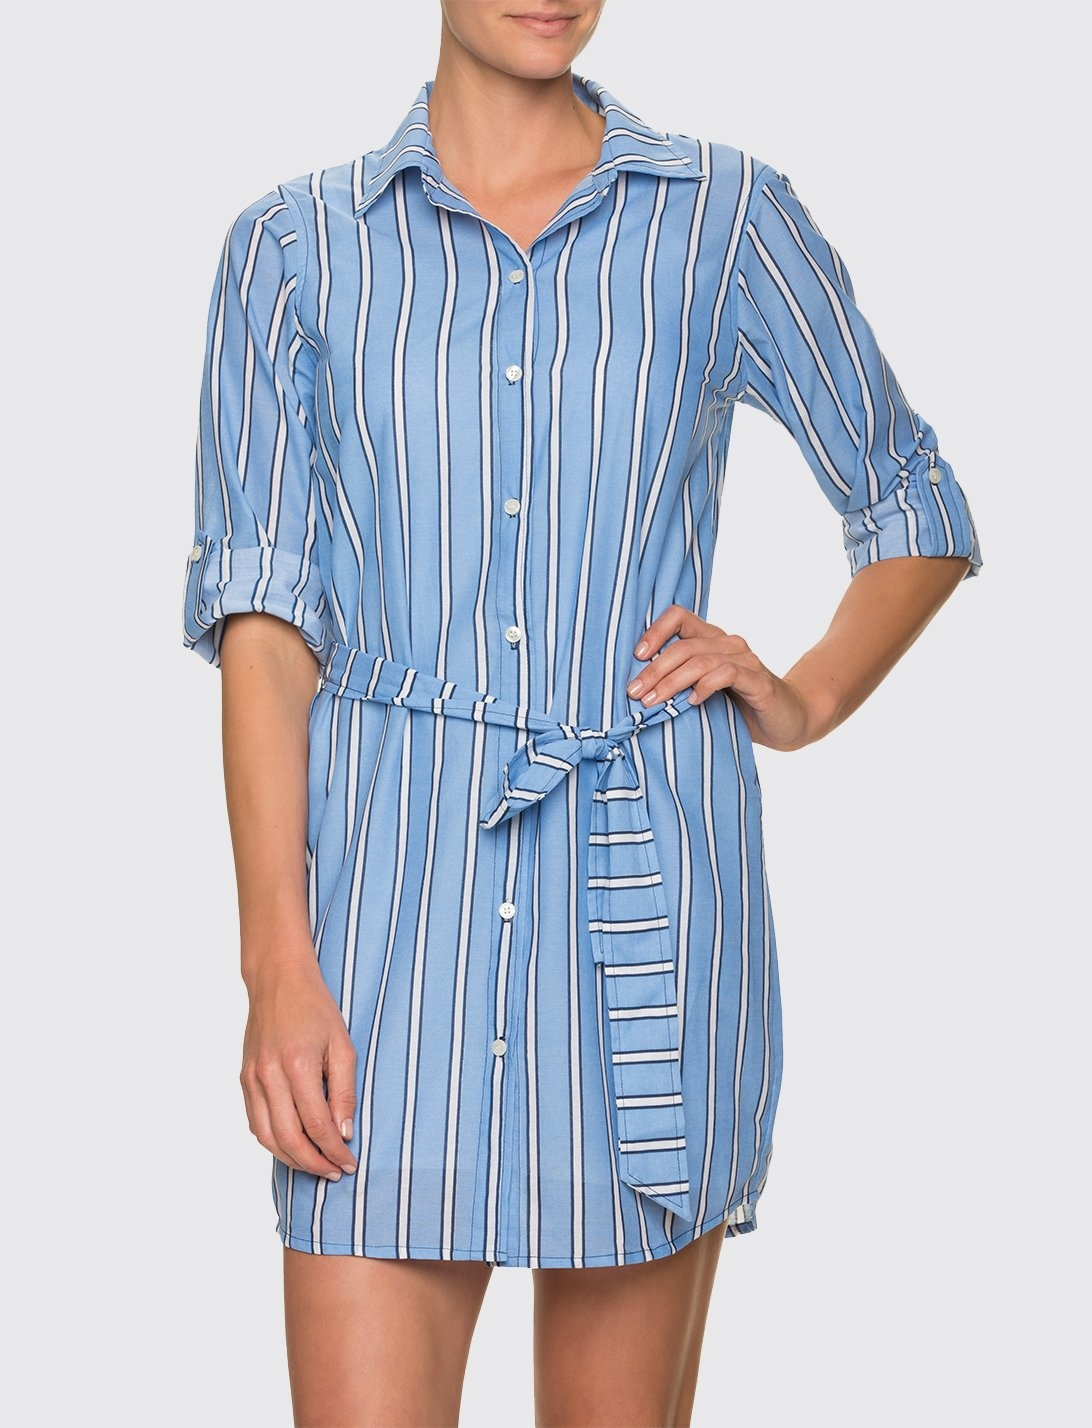 Draper James Draper James Sanibel Dress